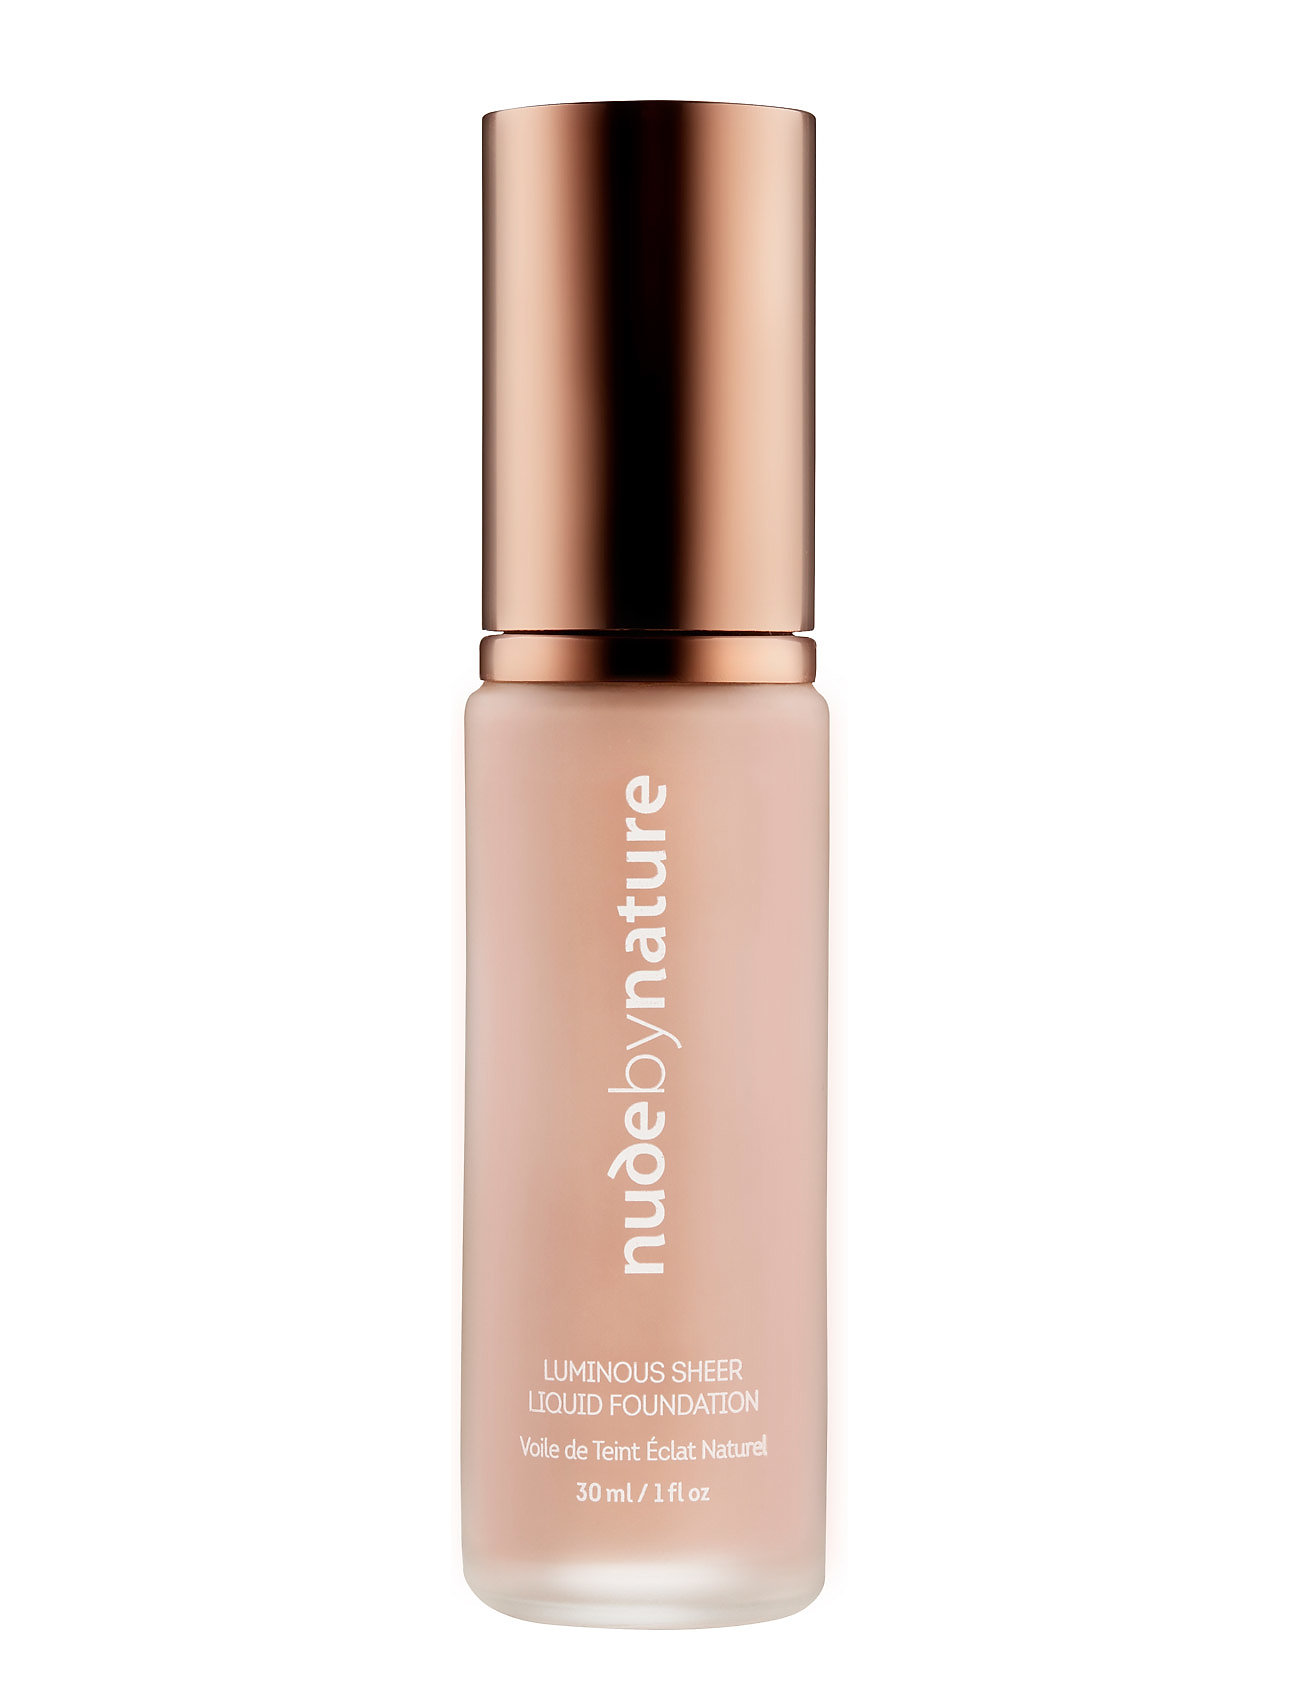 Image of Luminous Sheer Liquid Foundation N2 Warm Nude Foundation Makeup Nude By Nature (3406135473)